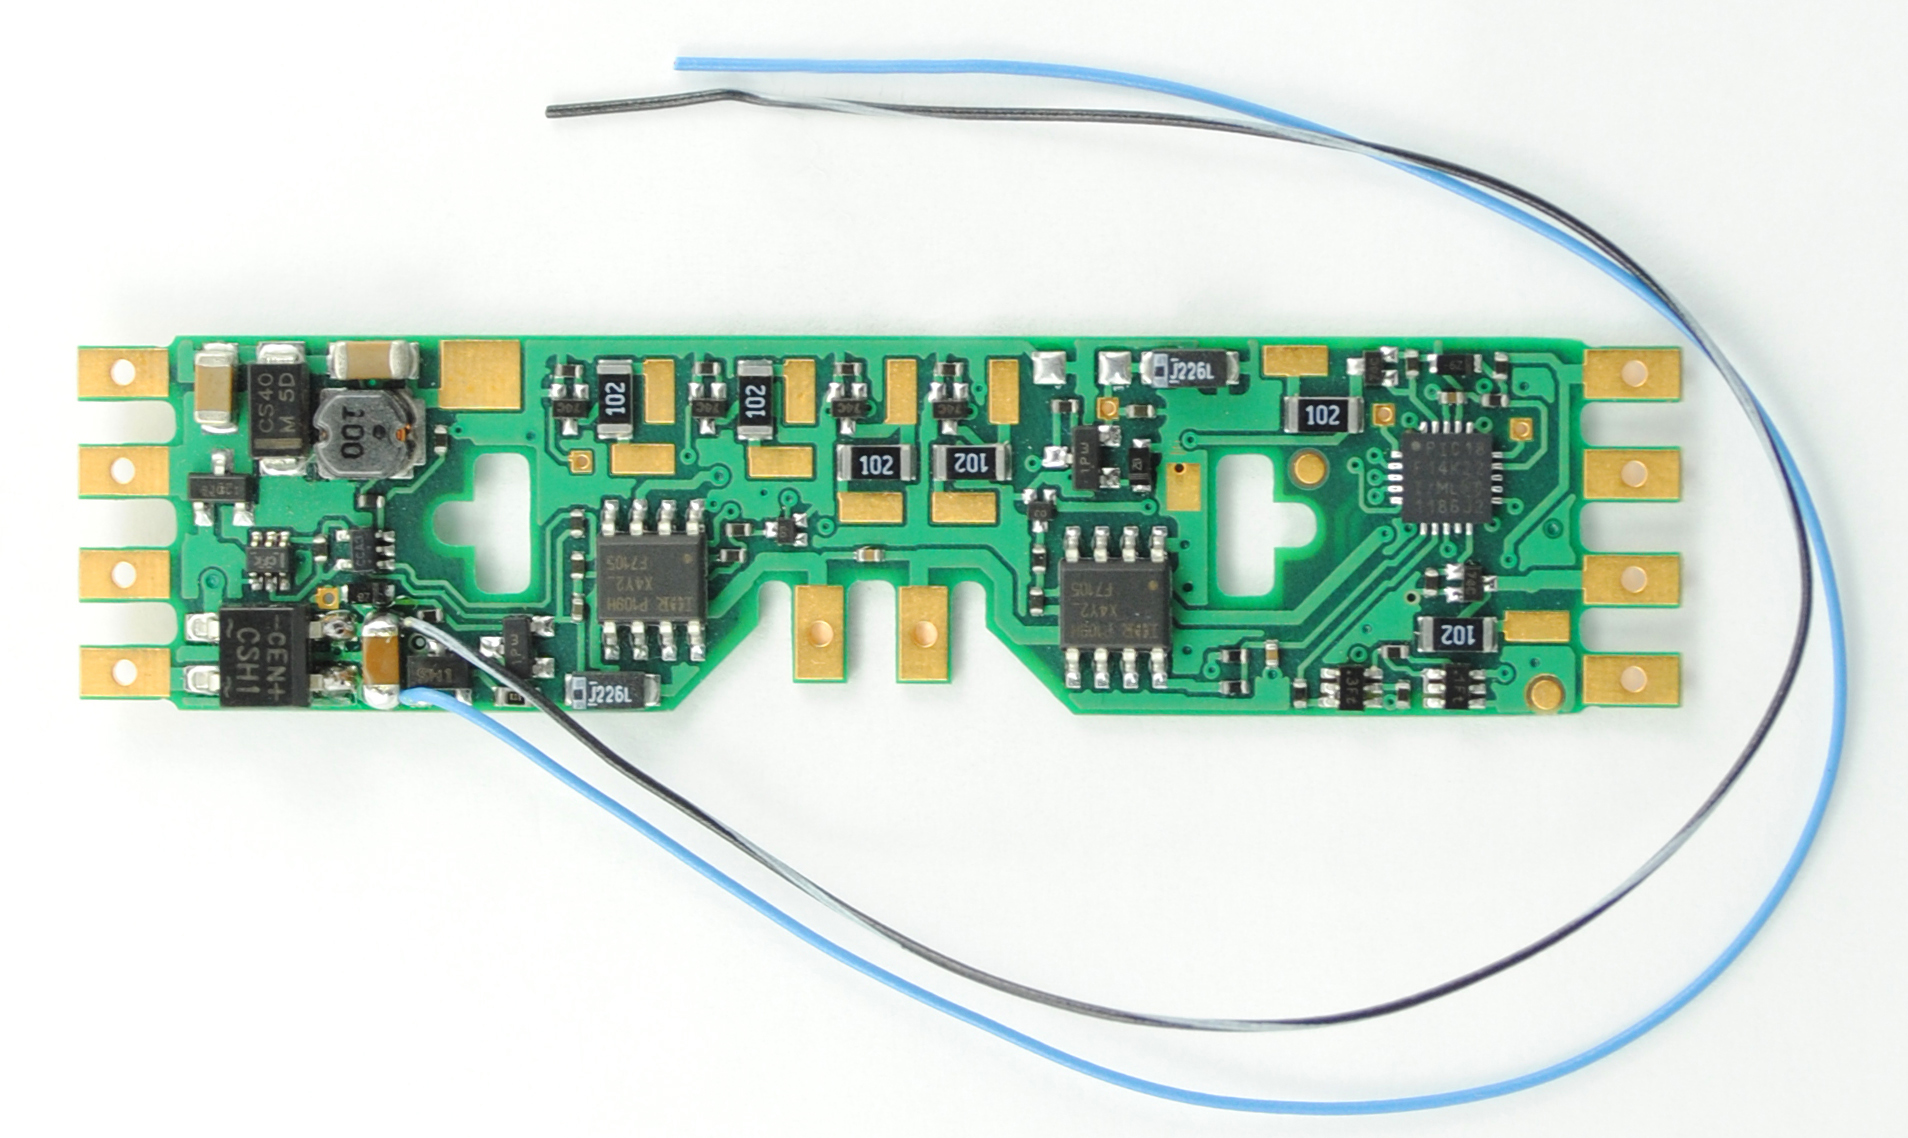 A4X-KA 4-Function Drop-In DCC Decoder w/TCS Keep Alive Wires - Control Only -- With Extra blue, black/white Wires Fits Atlas & Others w/Tab-Connections